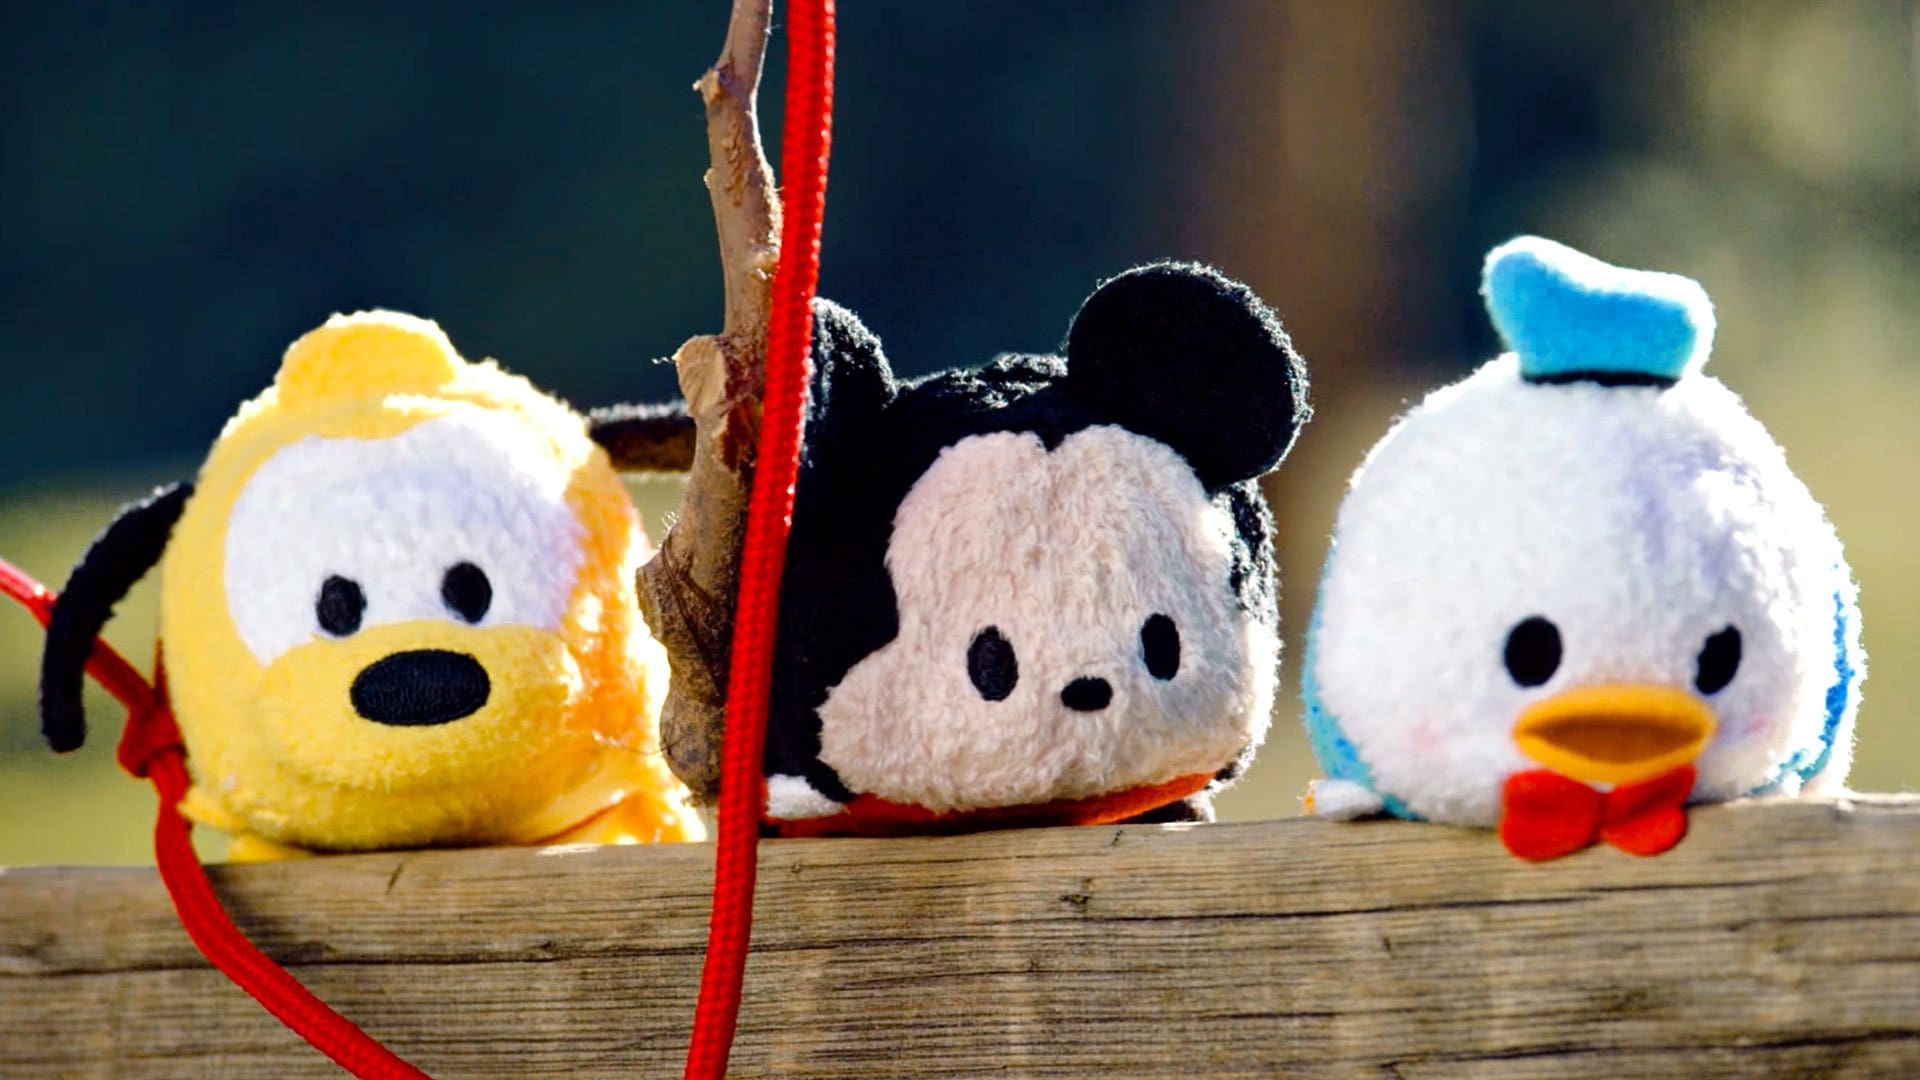 Mickey Mouse Plush Goes Fishing | Tsum Tsum Kingdom Episode 4 | Disney